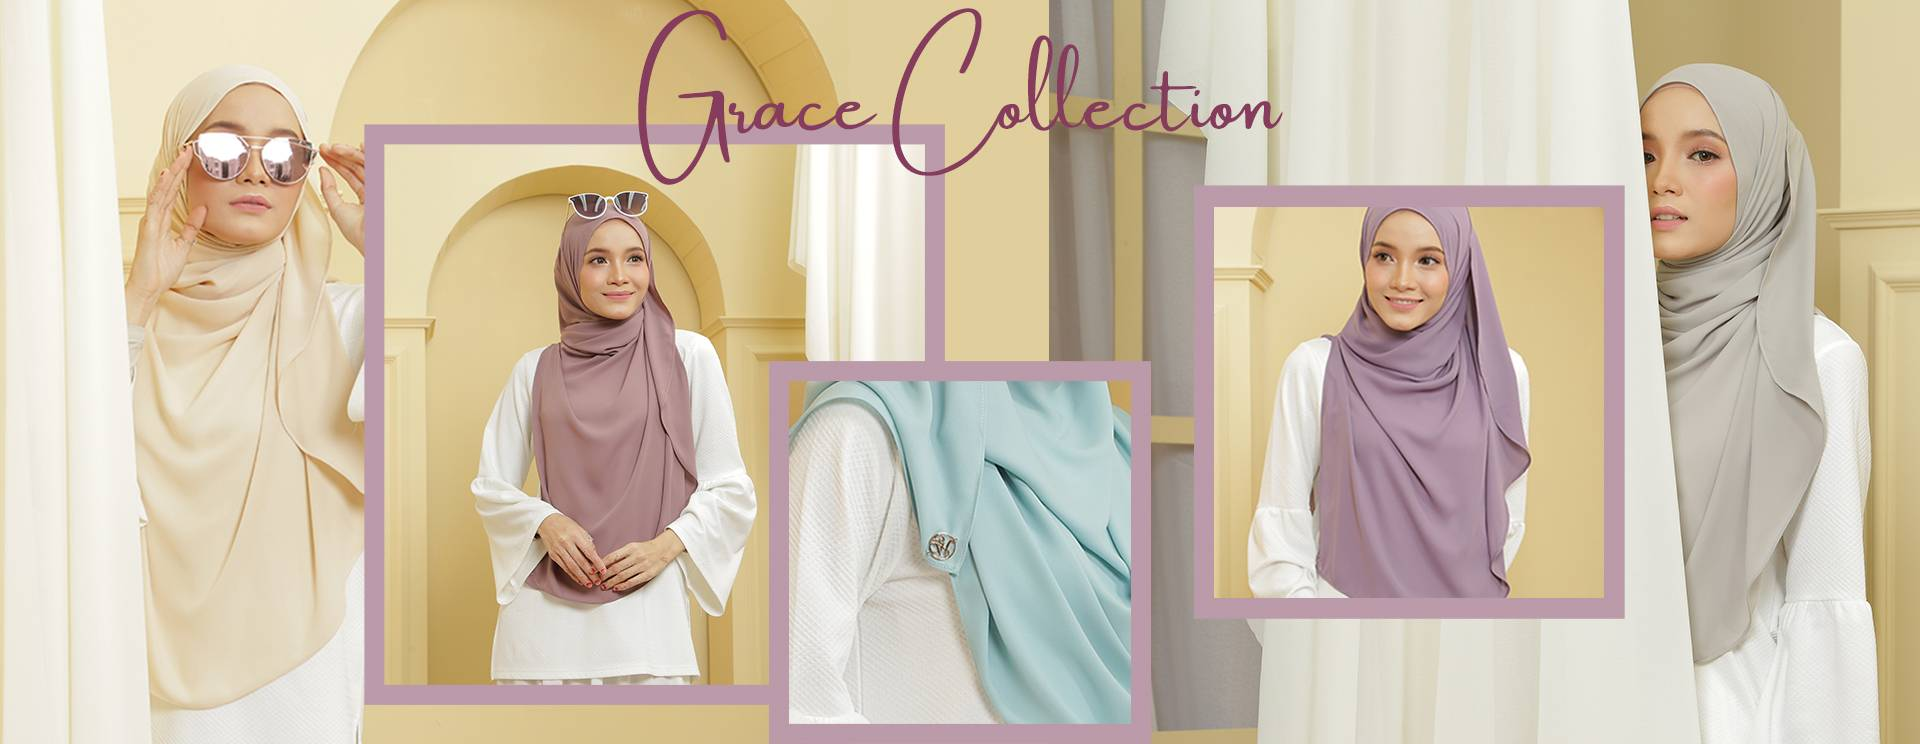 Grace Collection Classic